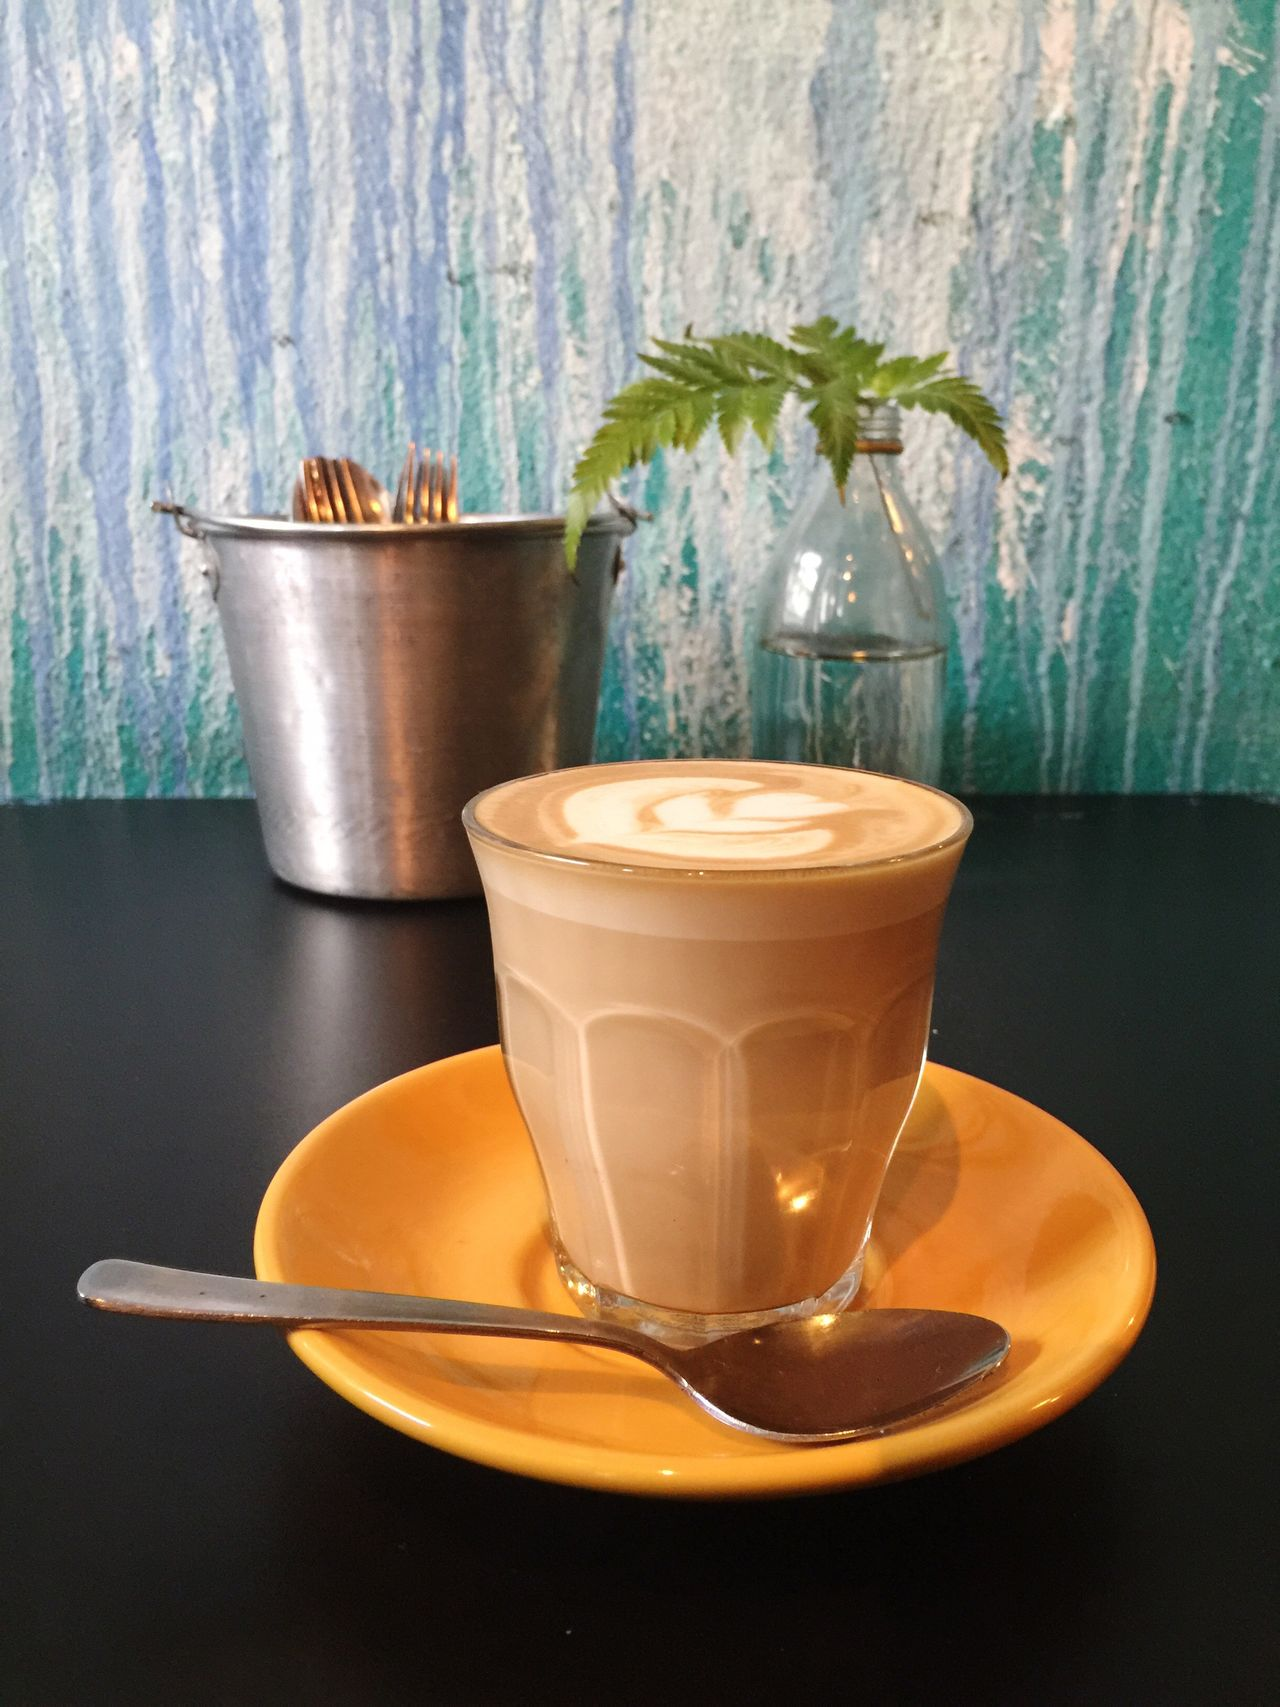 Latte Coffee Latte Latte Art Food And Drink Coffee Cup Table Close-up Teatime Gathering Cafe Hot Latte Heart Green Wall Drink Drinking Glass Relaxing Moments